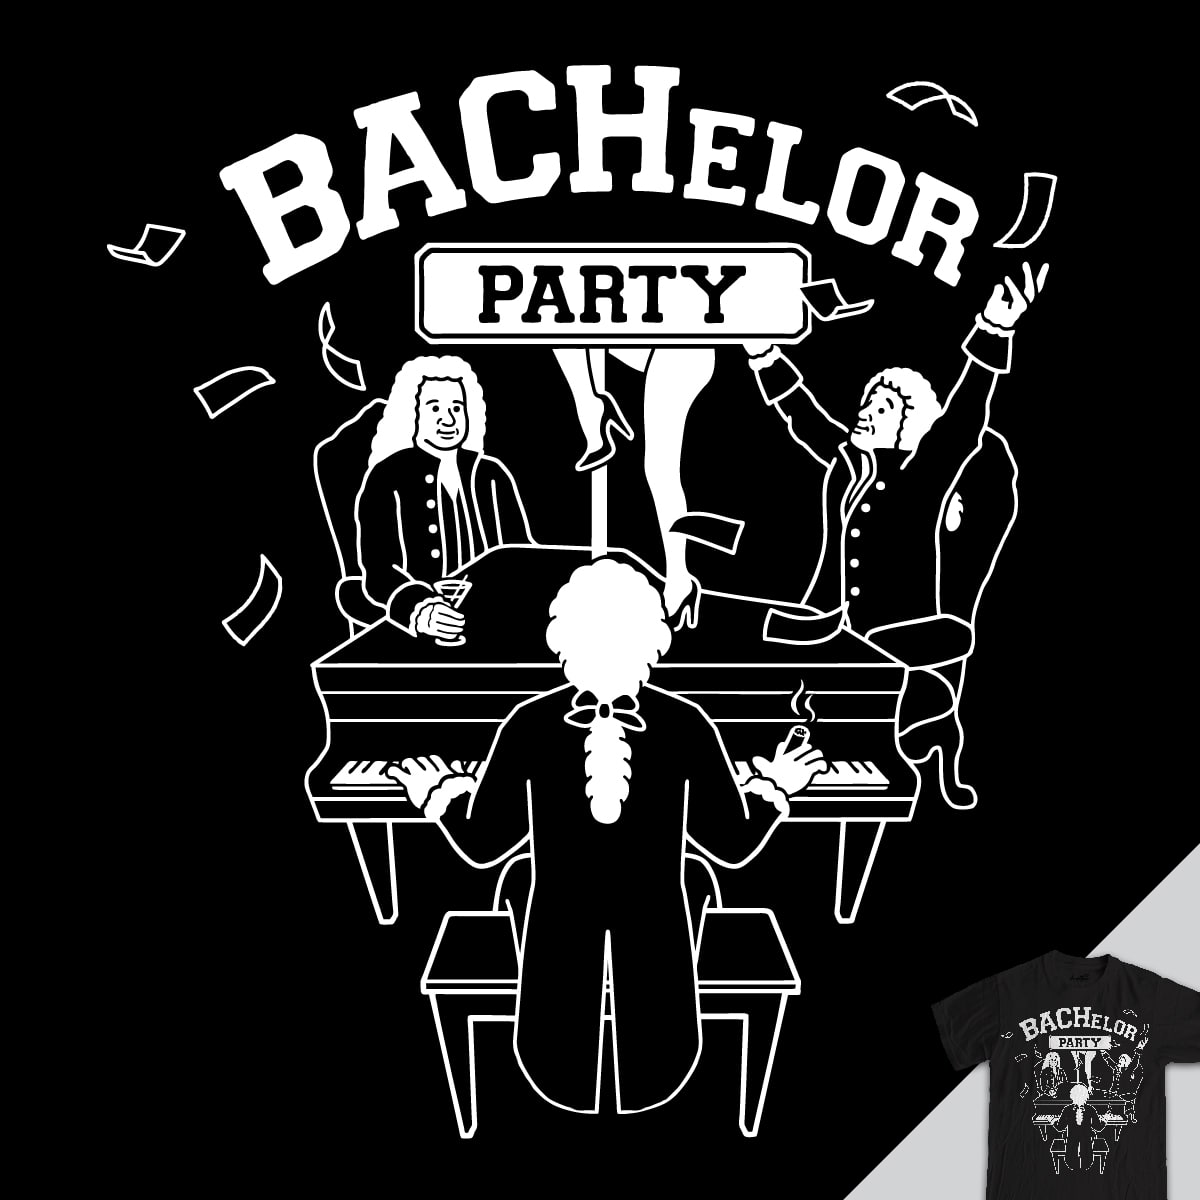 BACHelor Party by davidfromdallas and DustinTaylor on Threadless